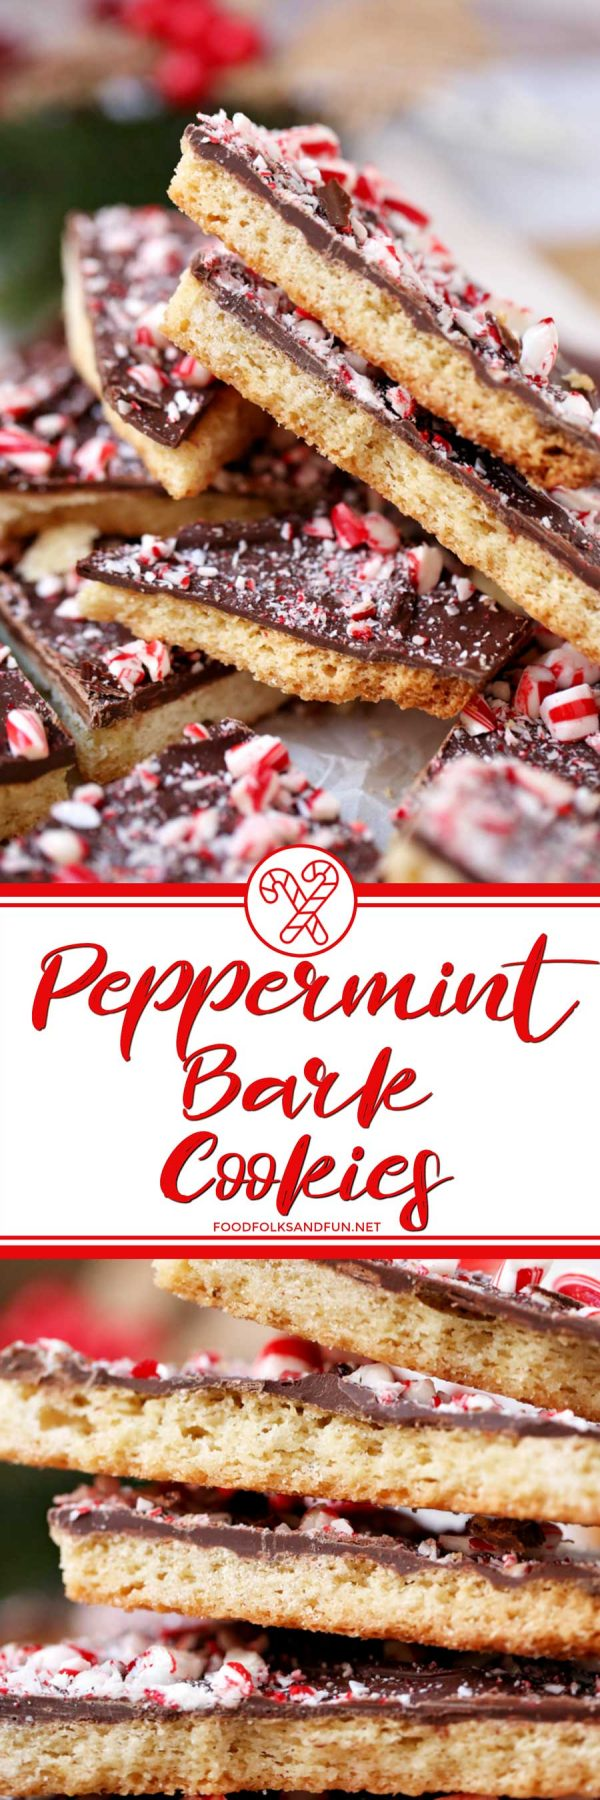 These Peppermint Bark Cookies bring together everything you love about shortbread AND everything you love about peppermint bark in one bite! via @foodfolksandfun